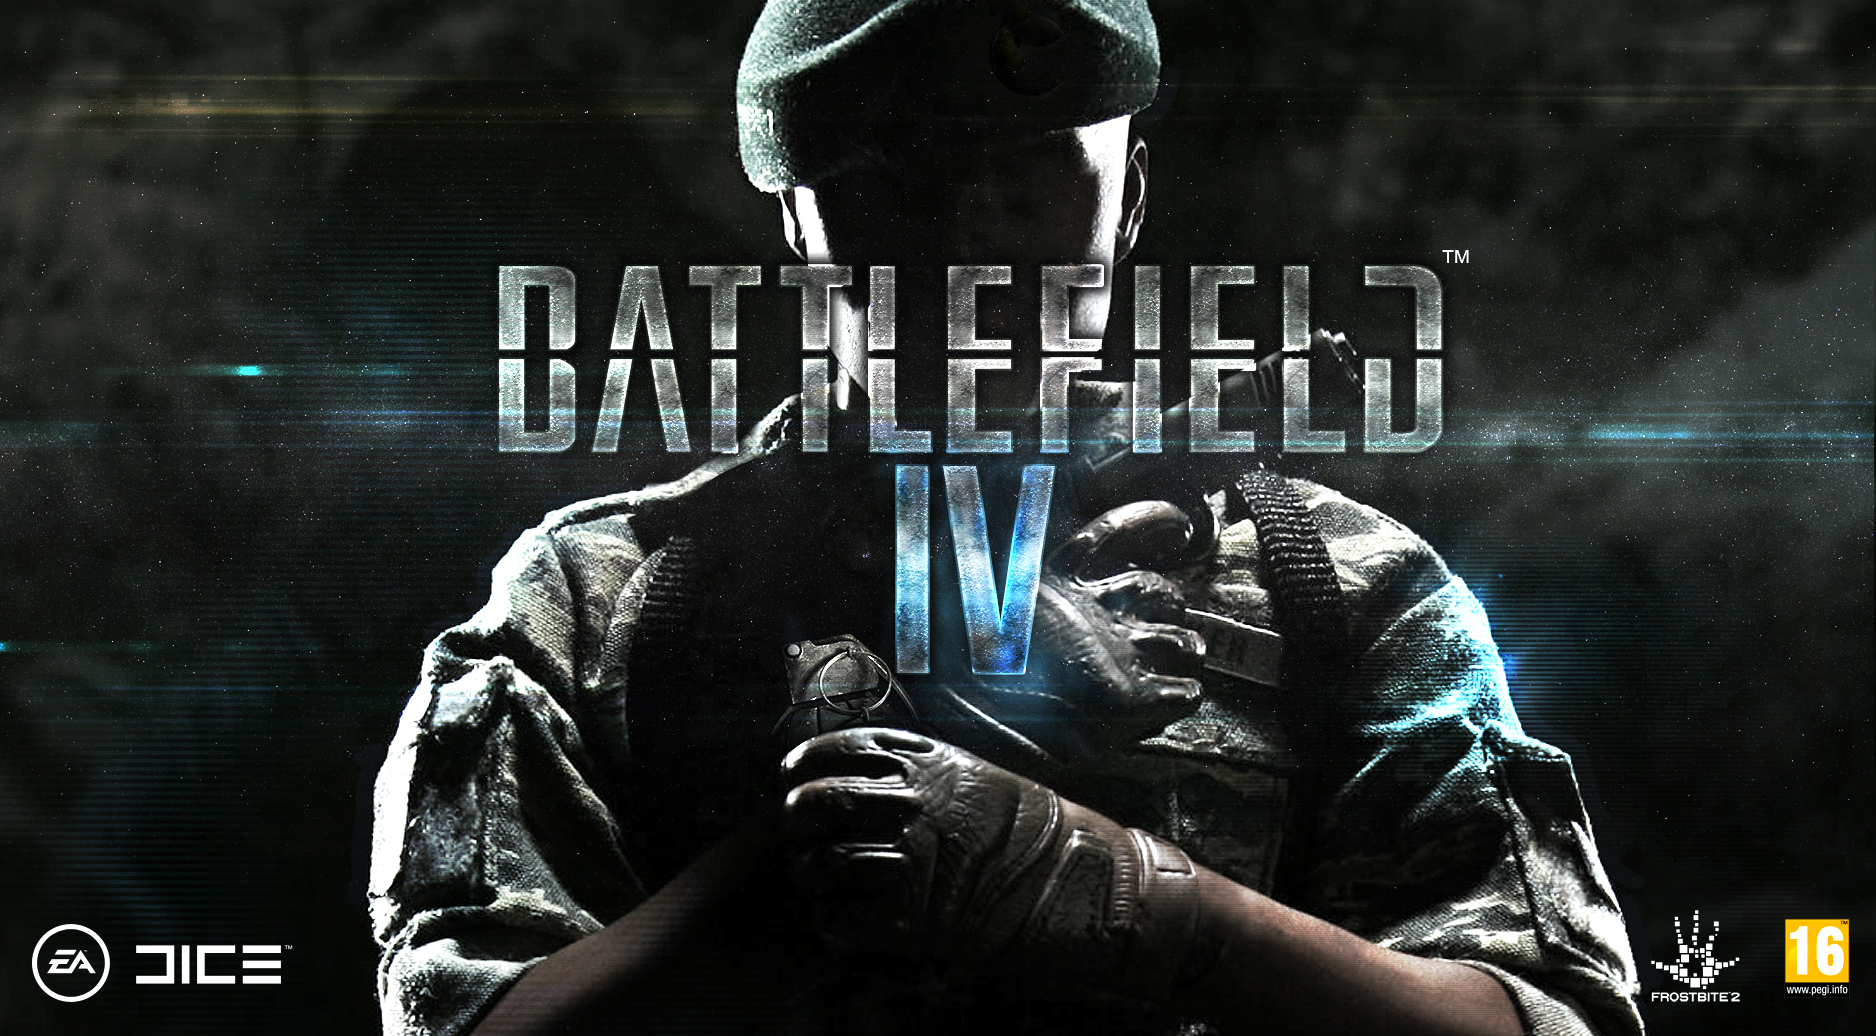 Acheter Battlefield 4, Battlefield 4 cd key